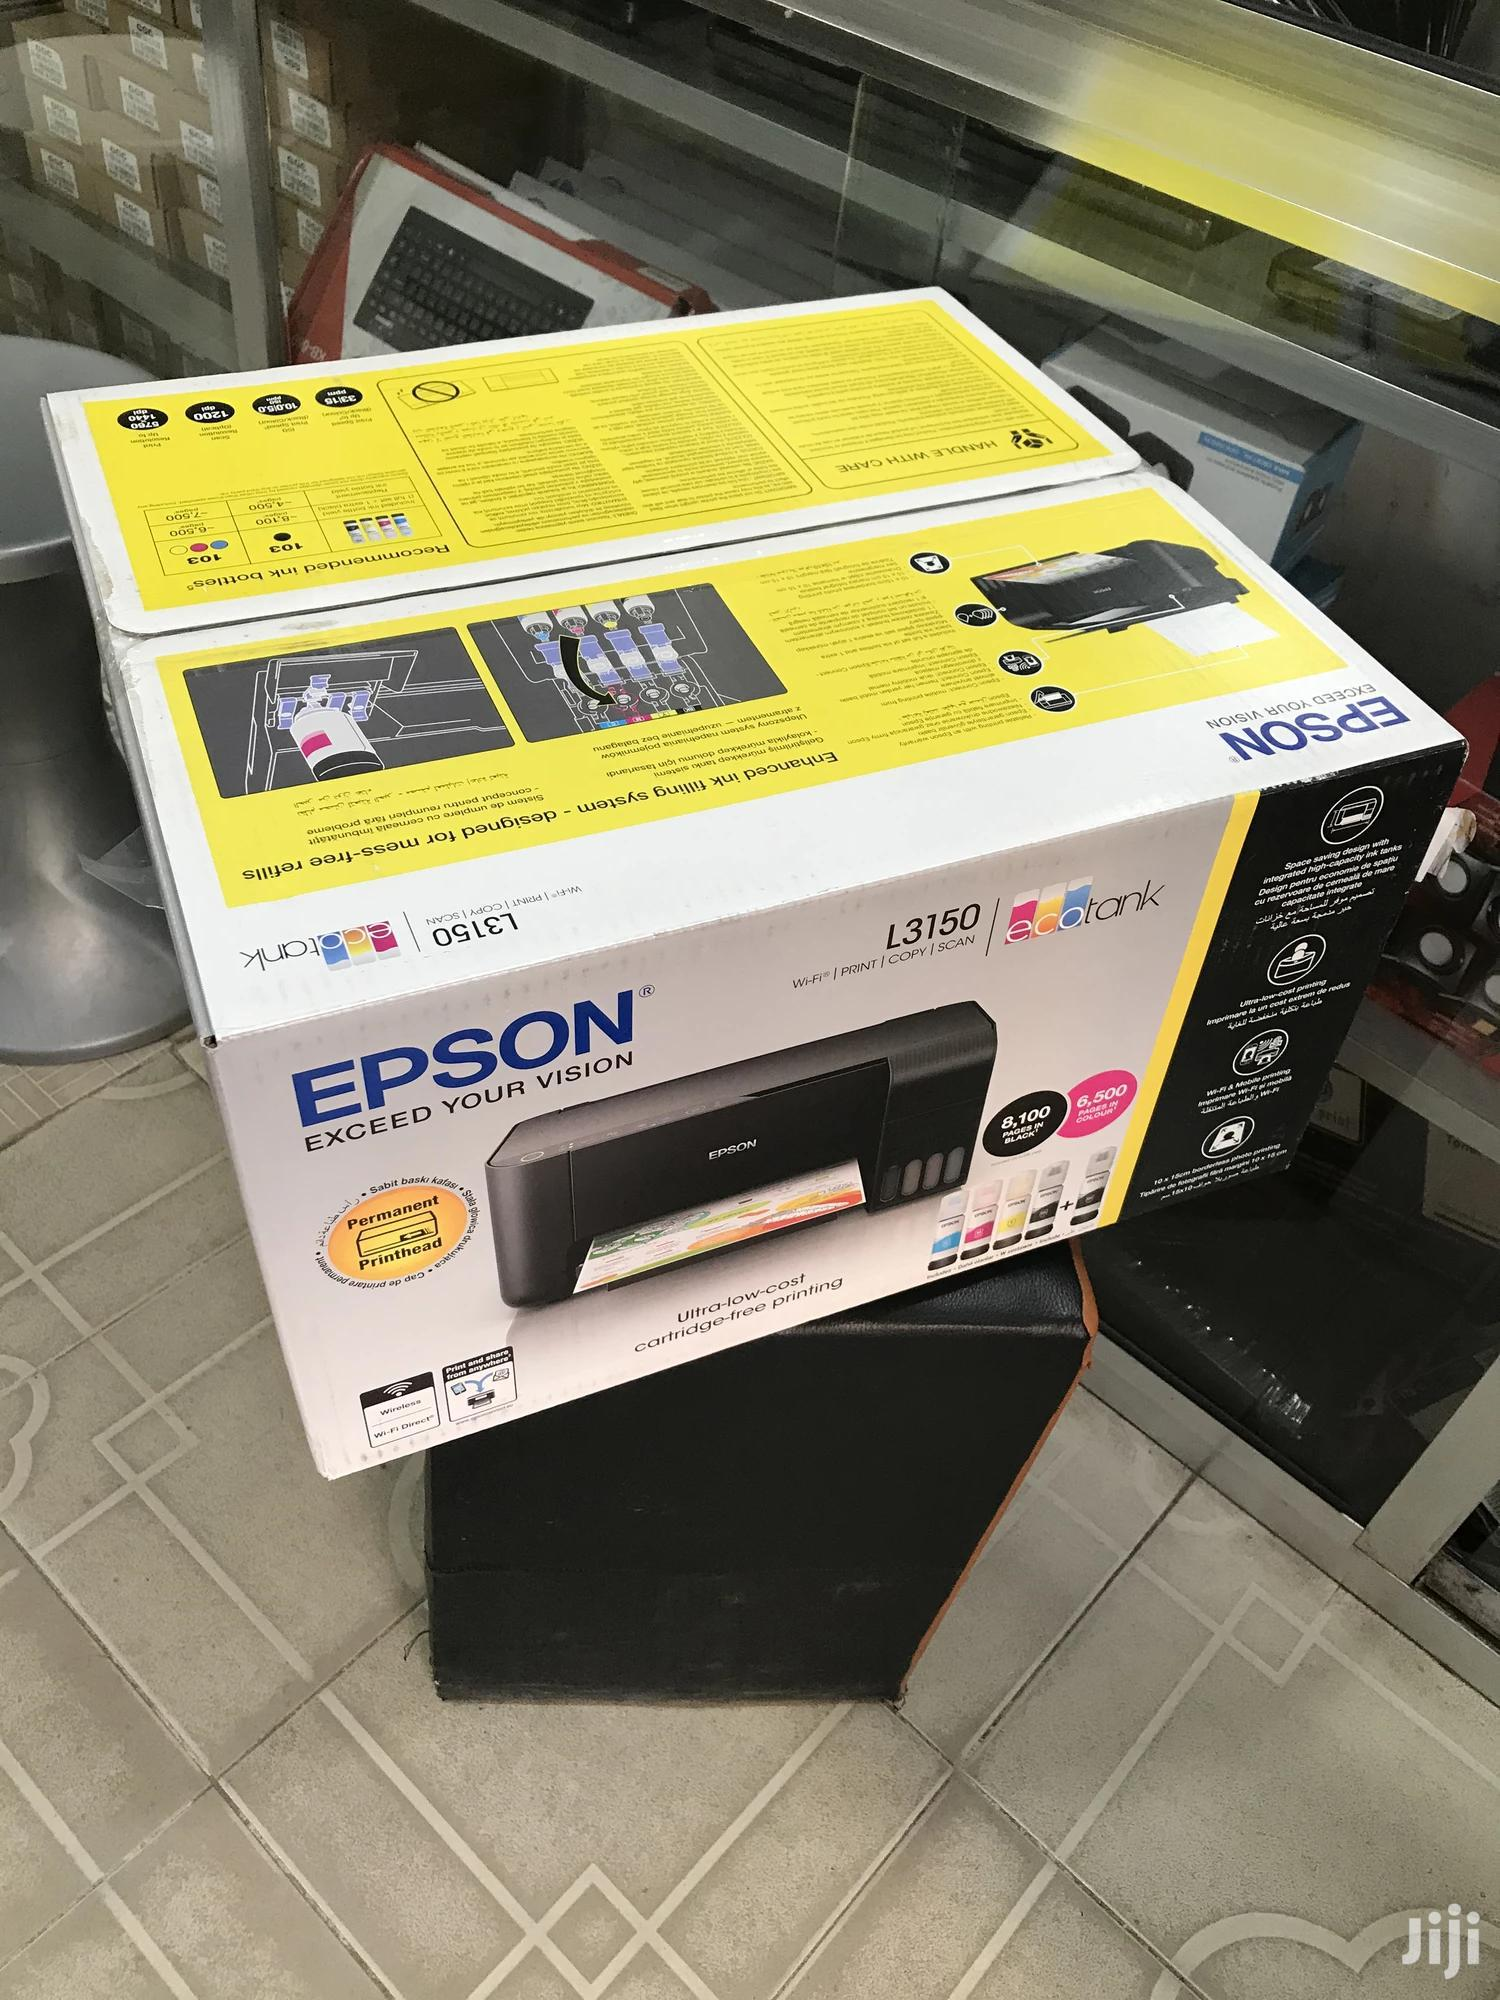 Epson L3150 Printer | Printers & Scanners for sale in Ilala, Dar es Salaam, Tanzania